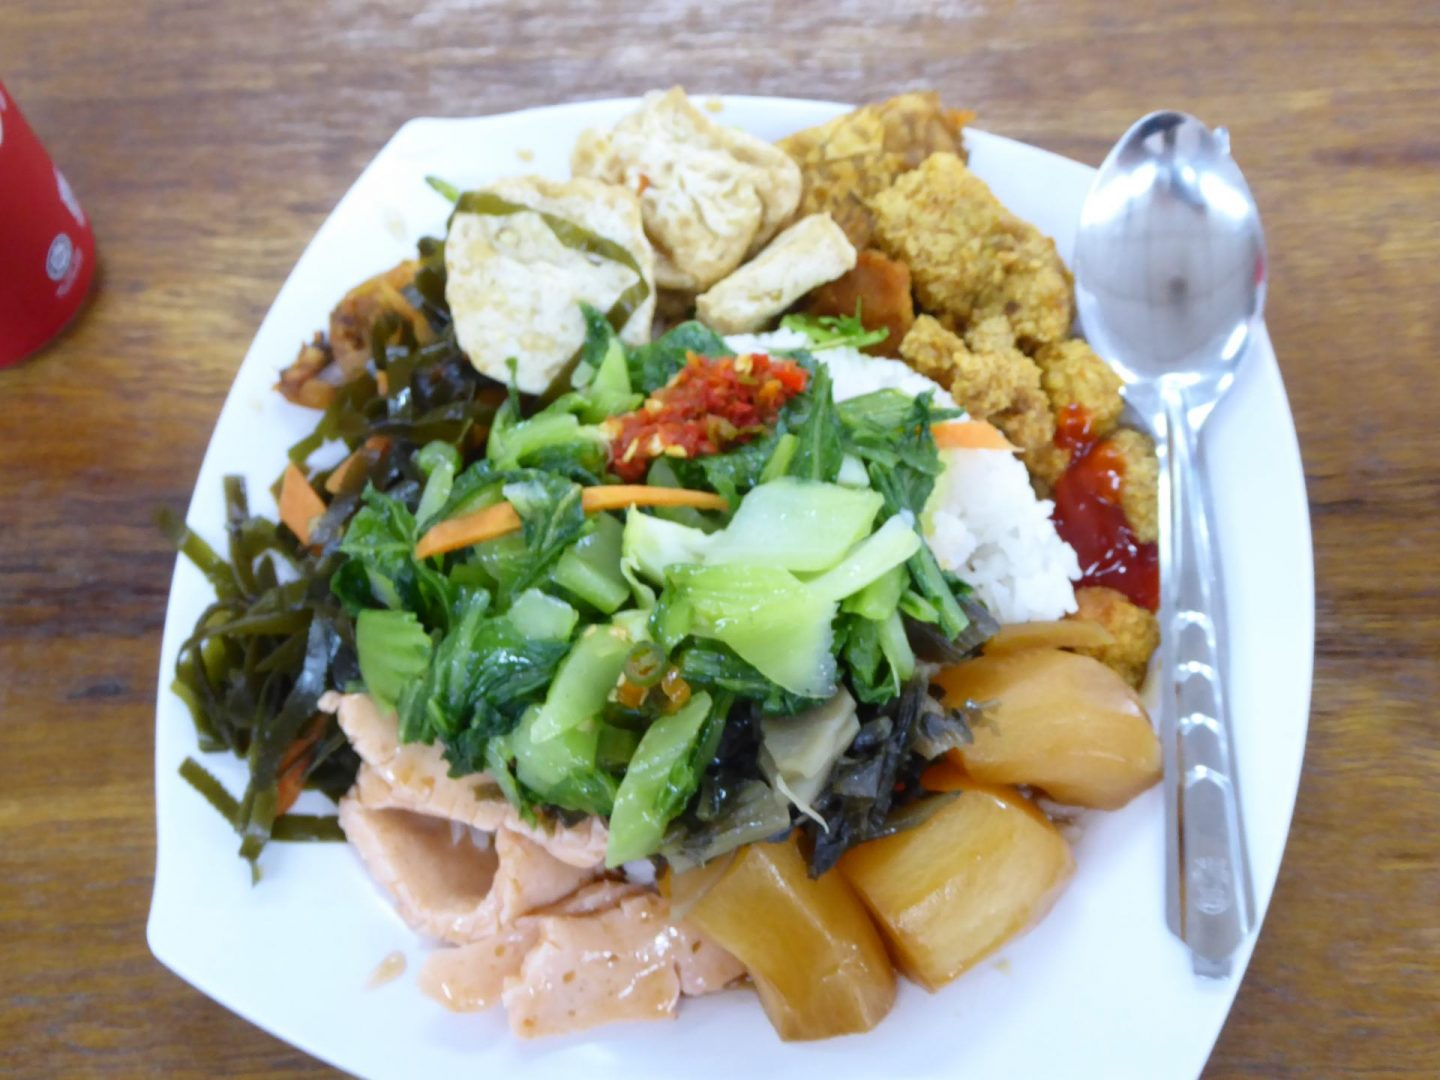 A plate of Chinese Malaysia Vegetarian Food including vegetables and 'mock meat' made from soy and other vegetable protein